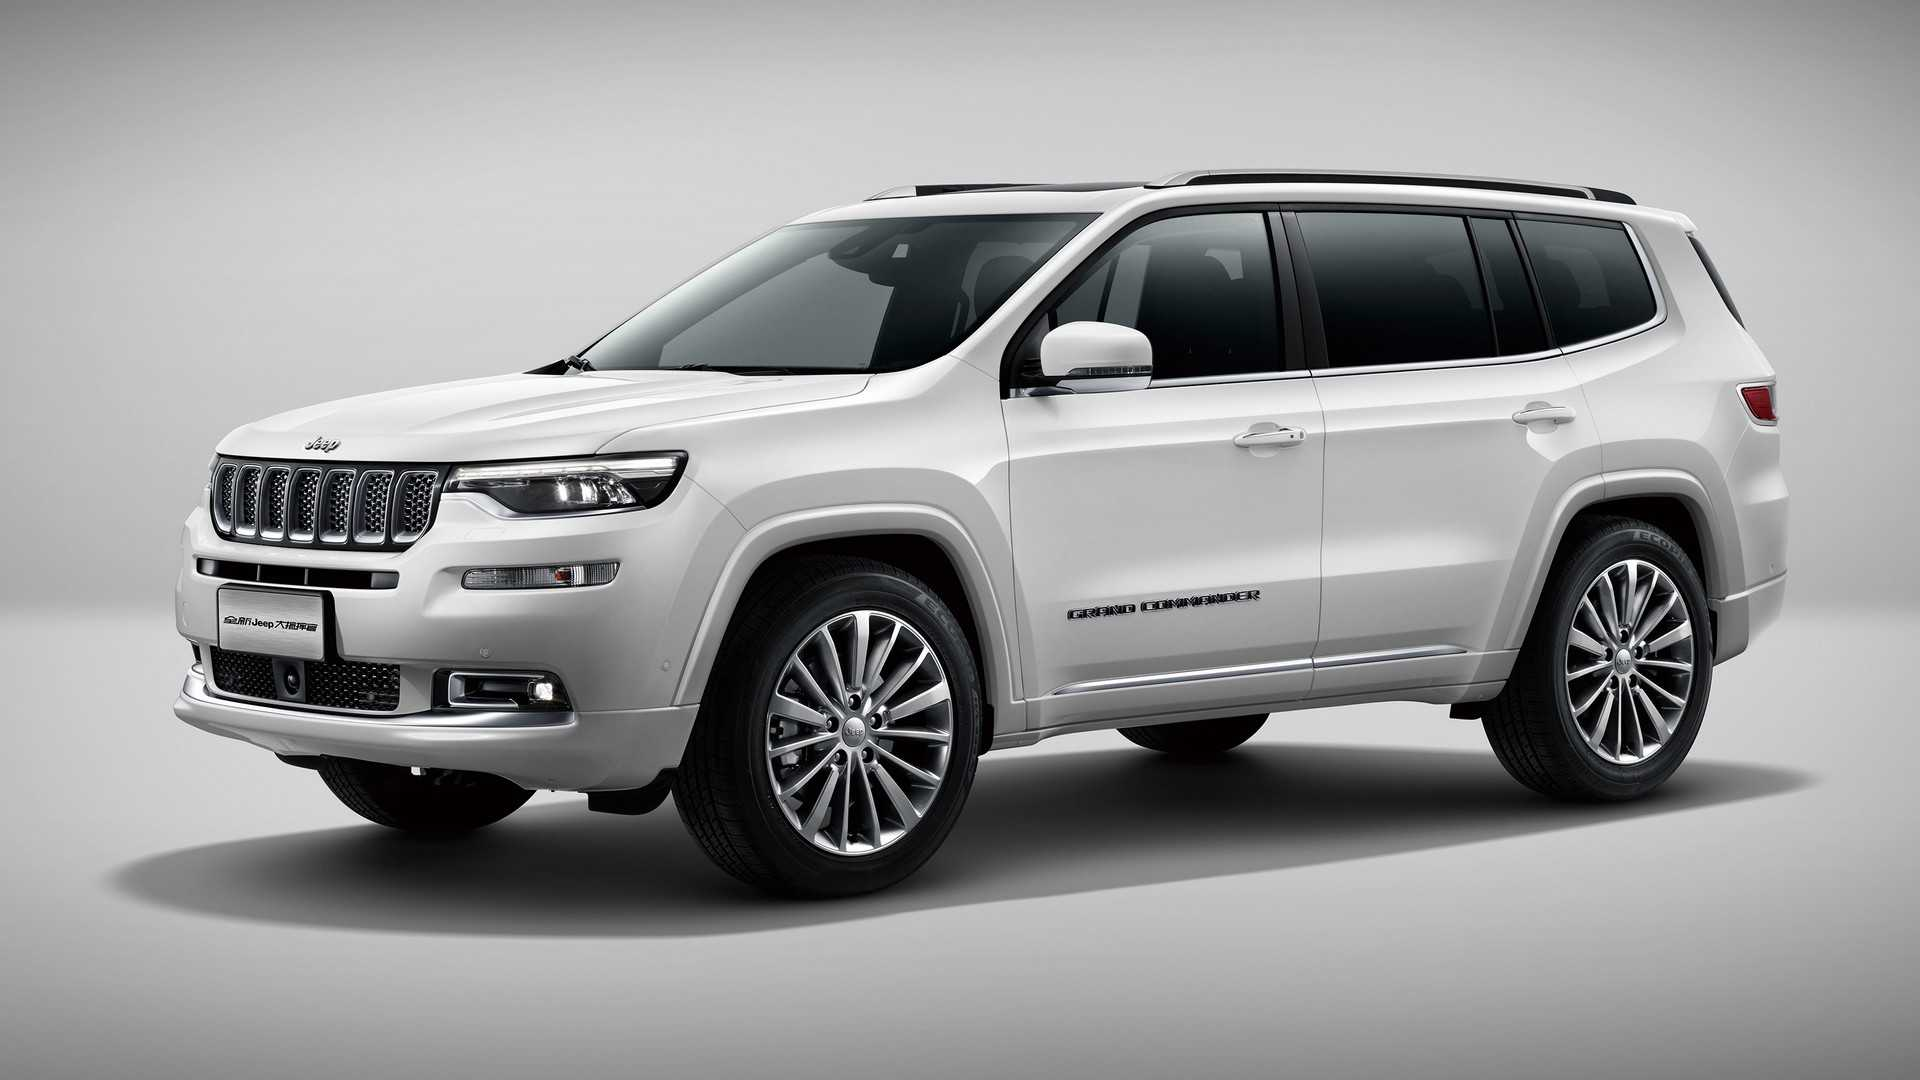 89 Best Review 2020 Jeep Commander Specs and Review with 2020 Jeep Commander